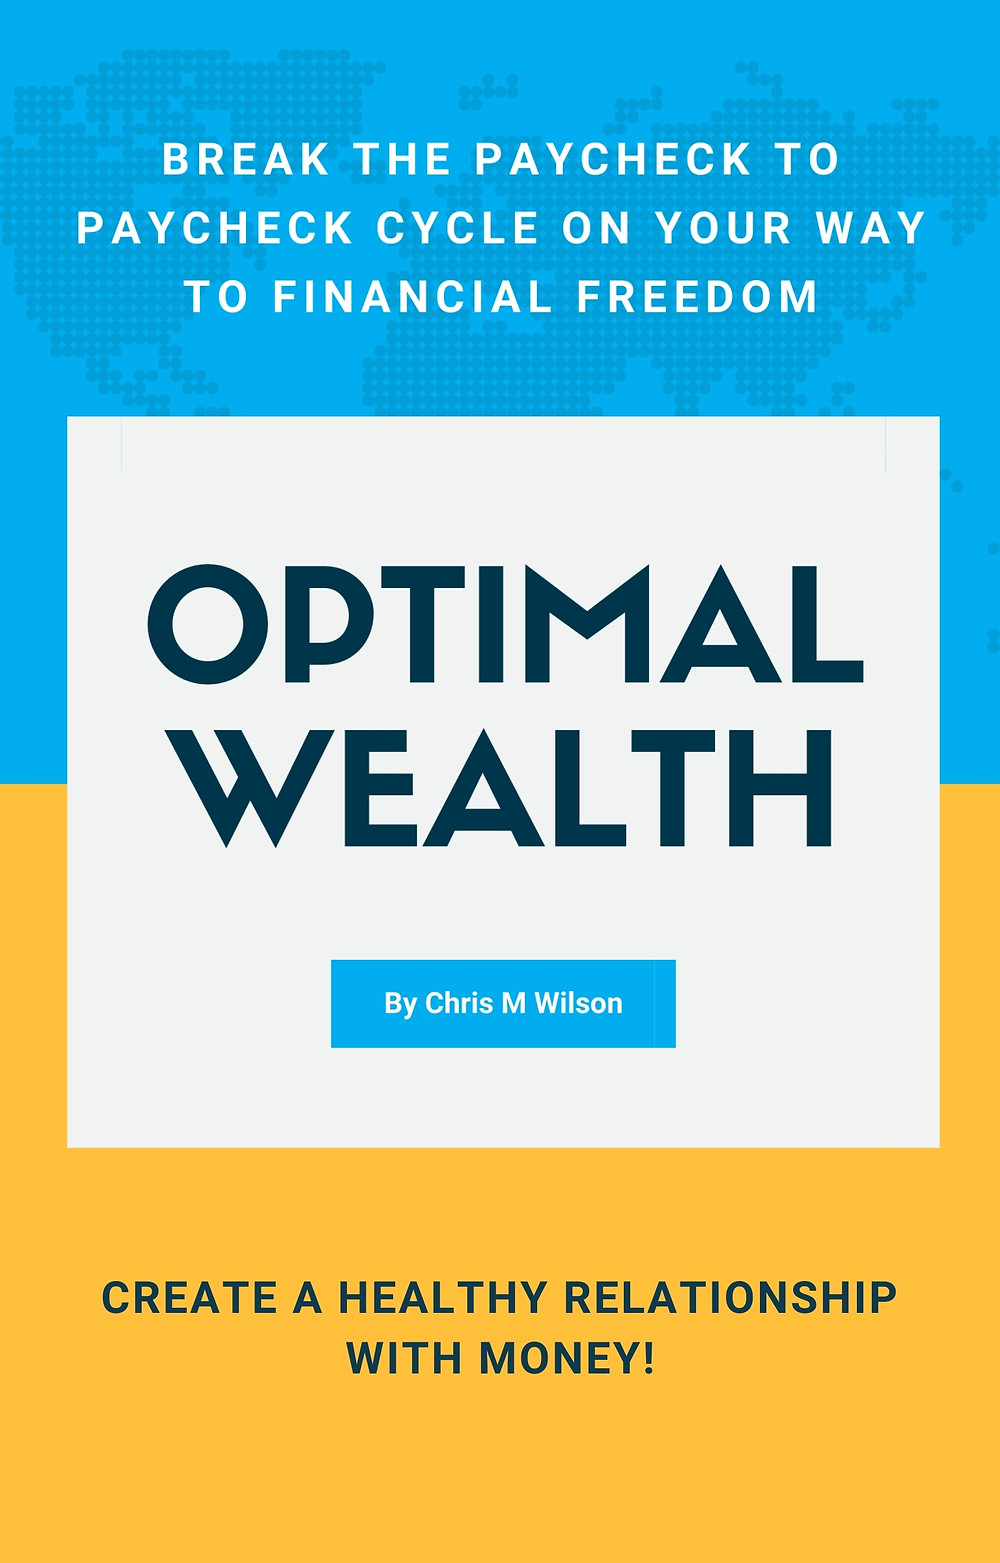 Optimal Wealth - Break the Paycheck to Paycheck Cycle on Your Way to Financial Freedom. Create a Healthy Relationship with Money! Your Optimal Lifestyle